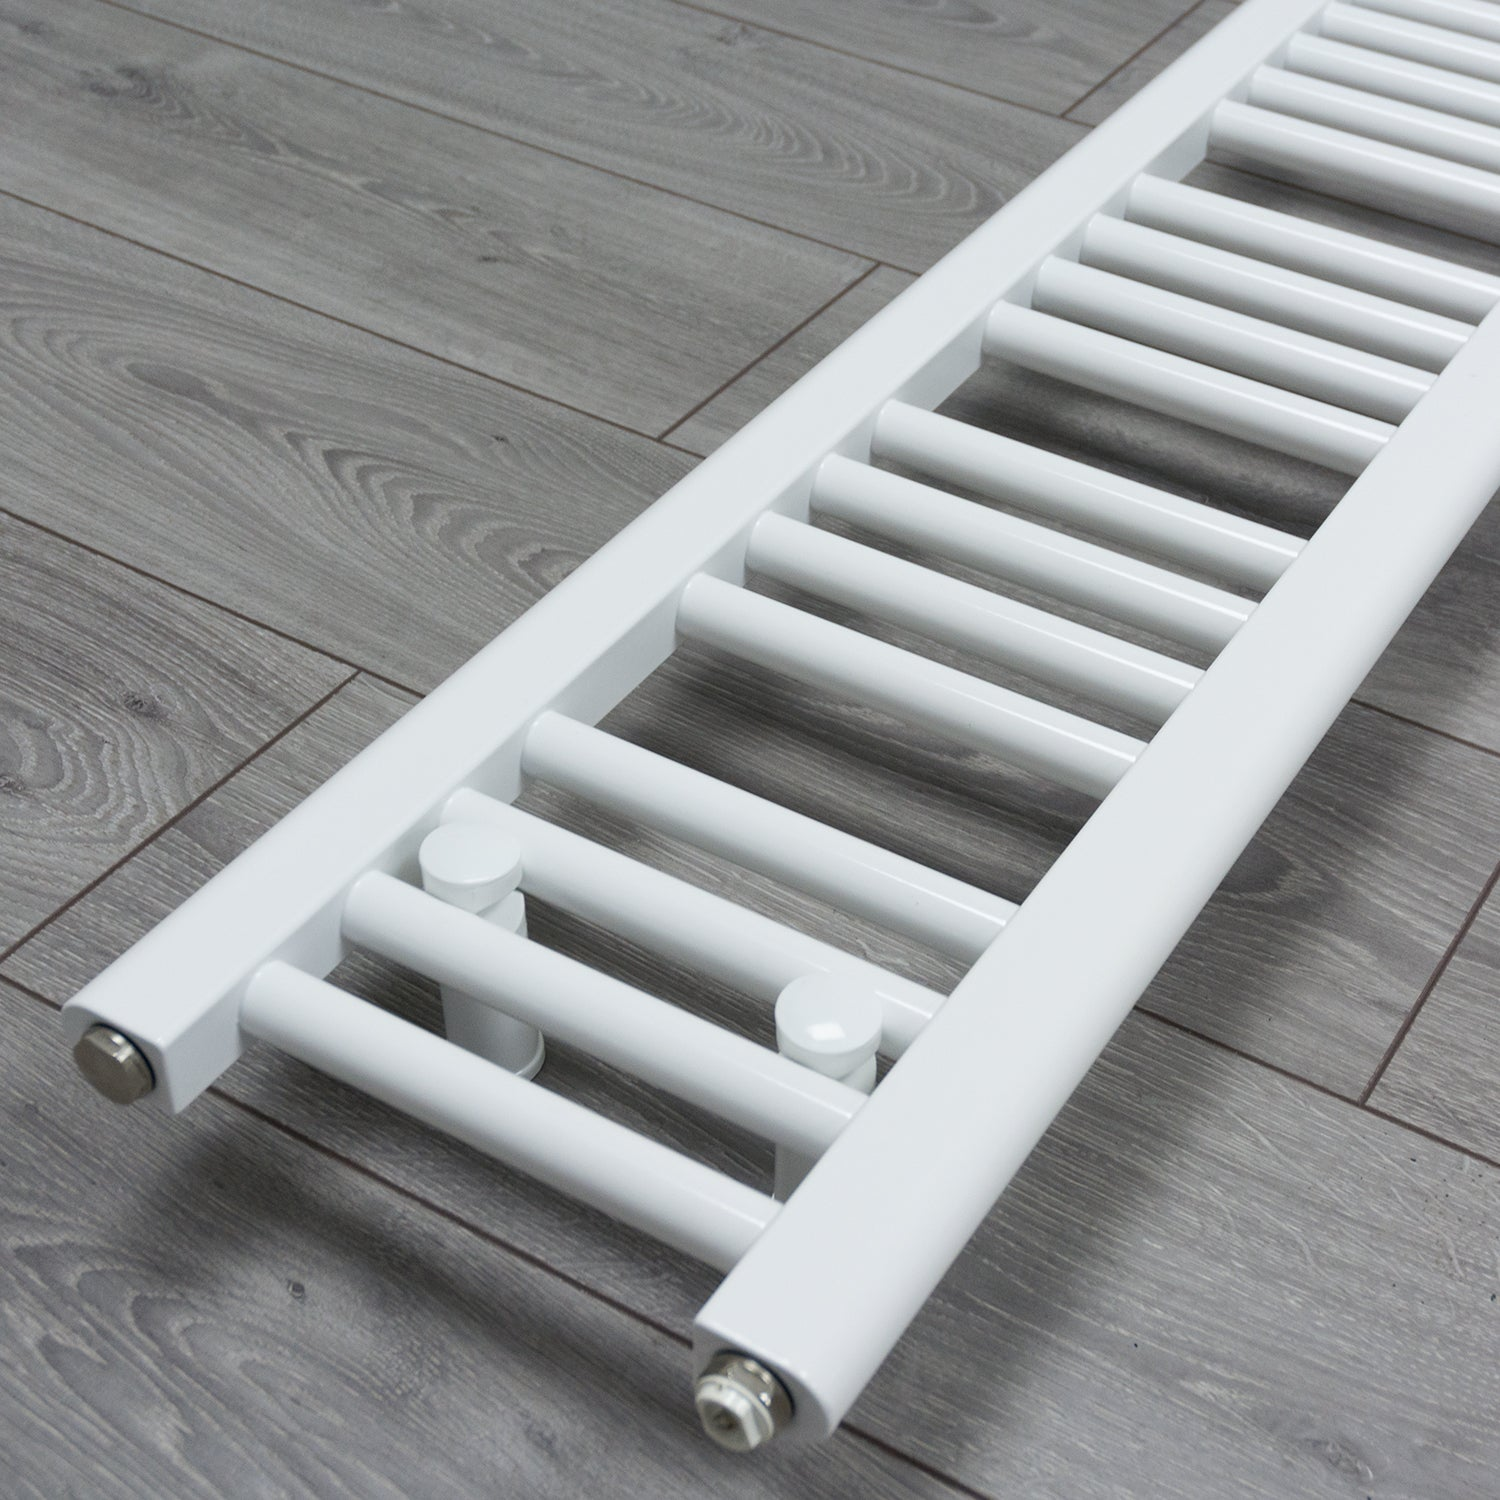 200mm x 1600mm White Heated Towel Rail Radiator Close Up Image